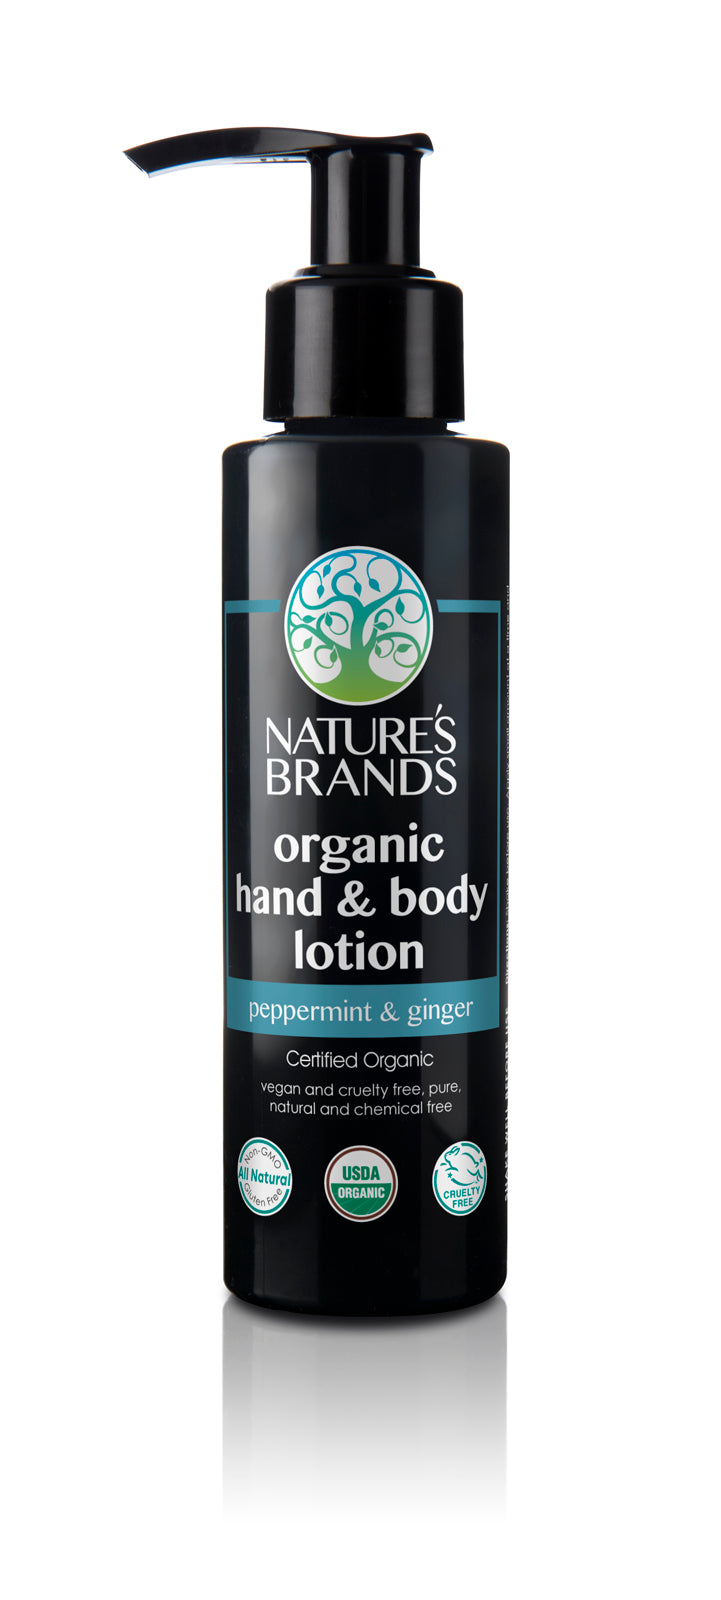 Herbal Choice Mari Organic Hand And Body Lotion, Peppermint & Ginger - Herbal Choice Mari Organic Hand And Body Lotion, Peppermint & Ginger - Herbal Choice Mari Organic Hand And Body Lotion, Peppermint & Ginger